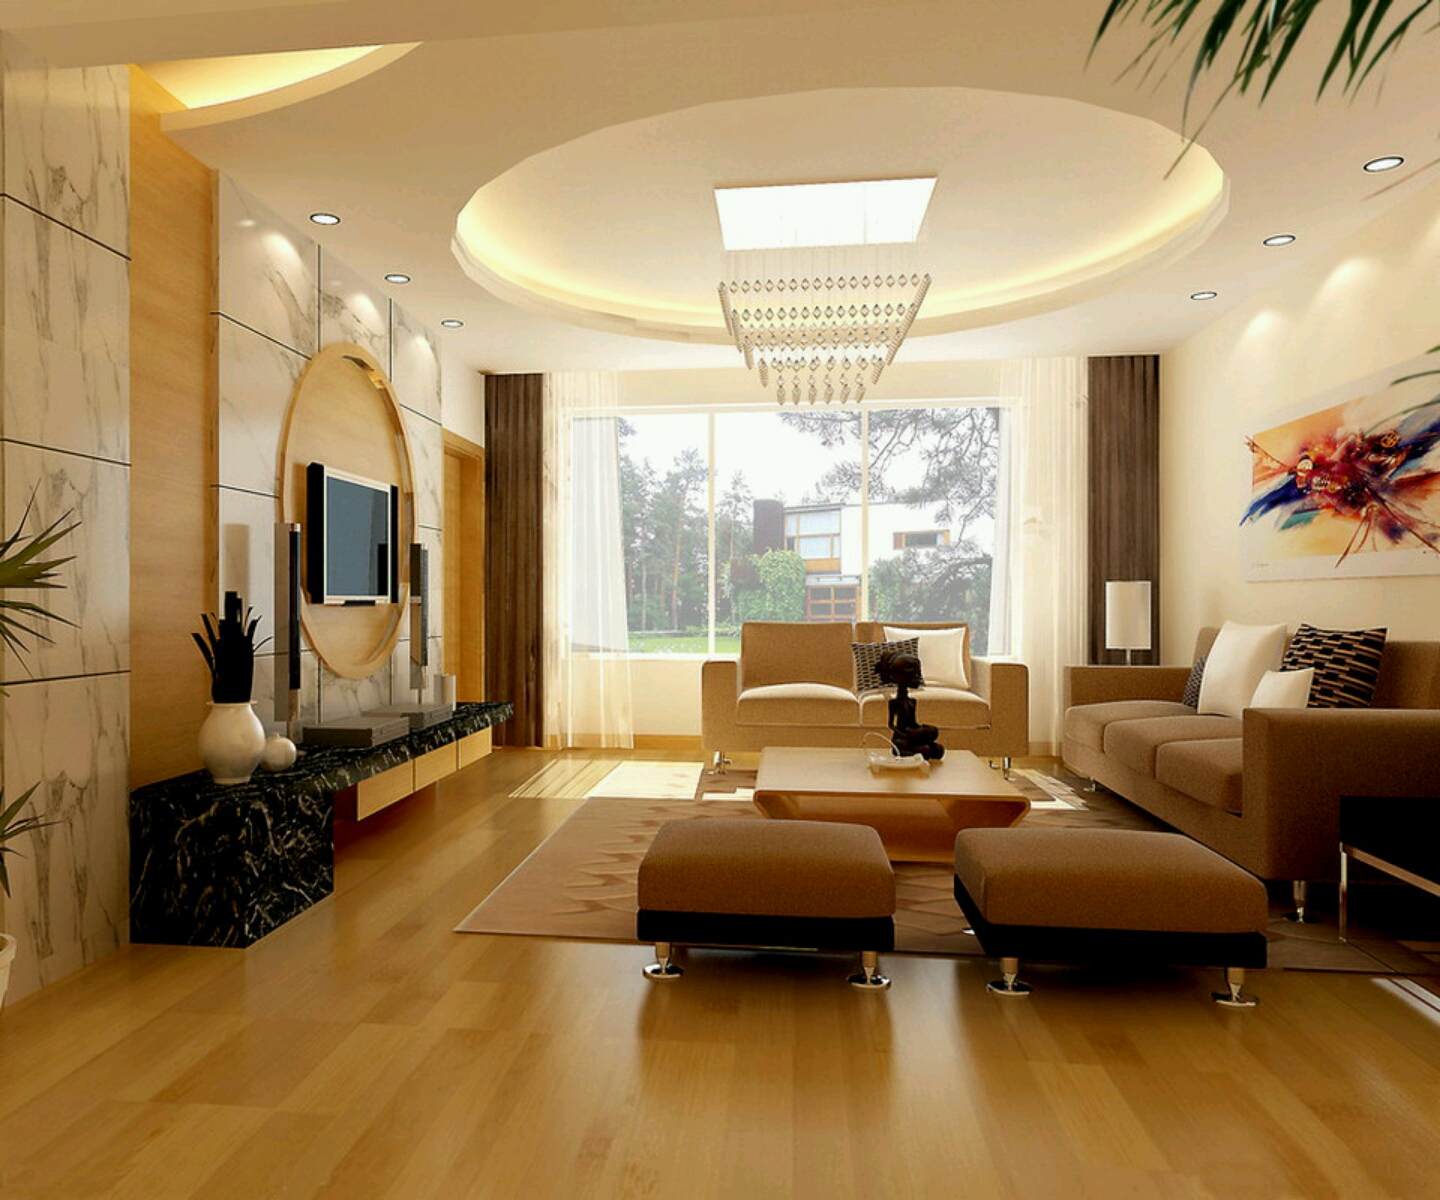 Inside Home Design Ideas: Modern Interior Decoration Living Rooms Ceiling Designs